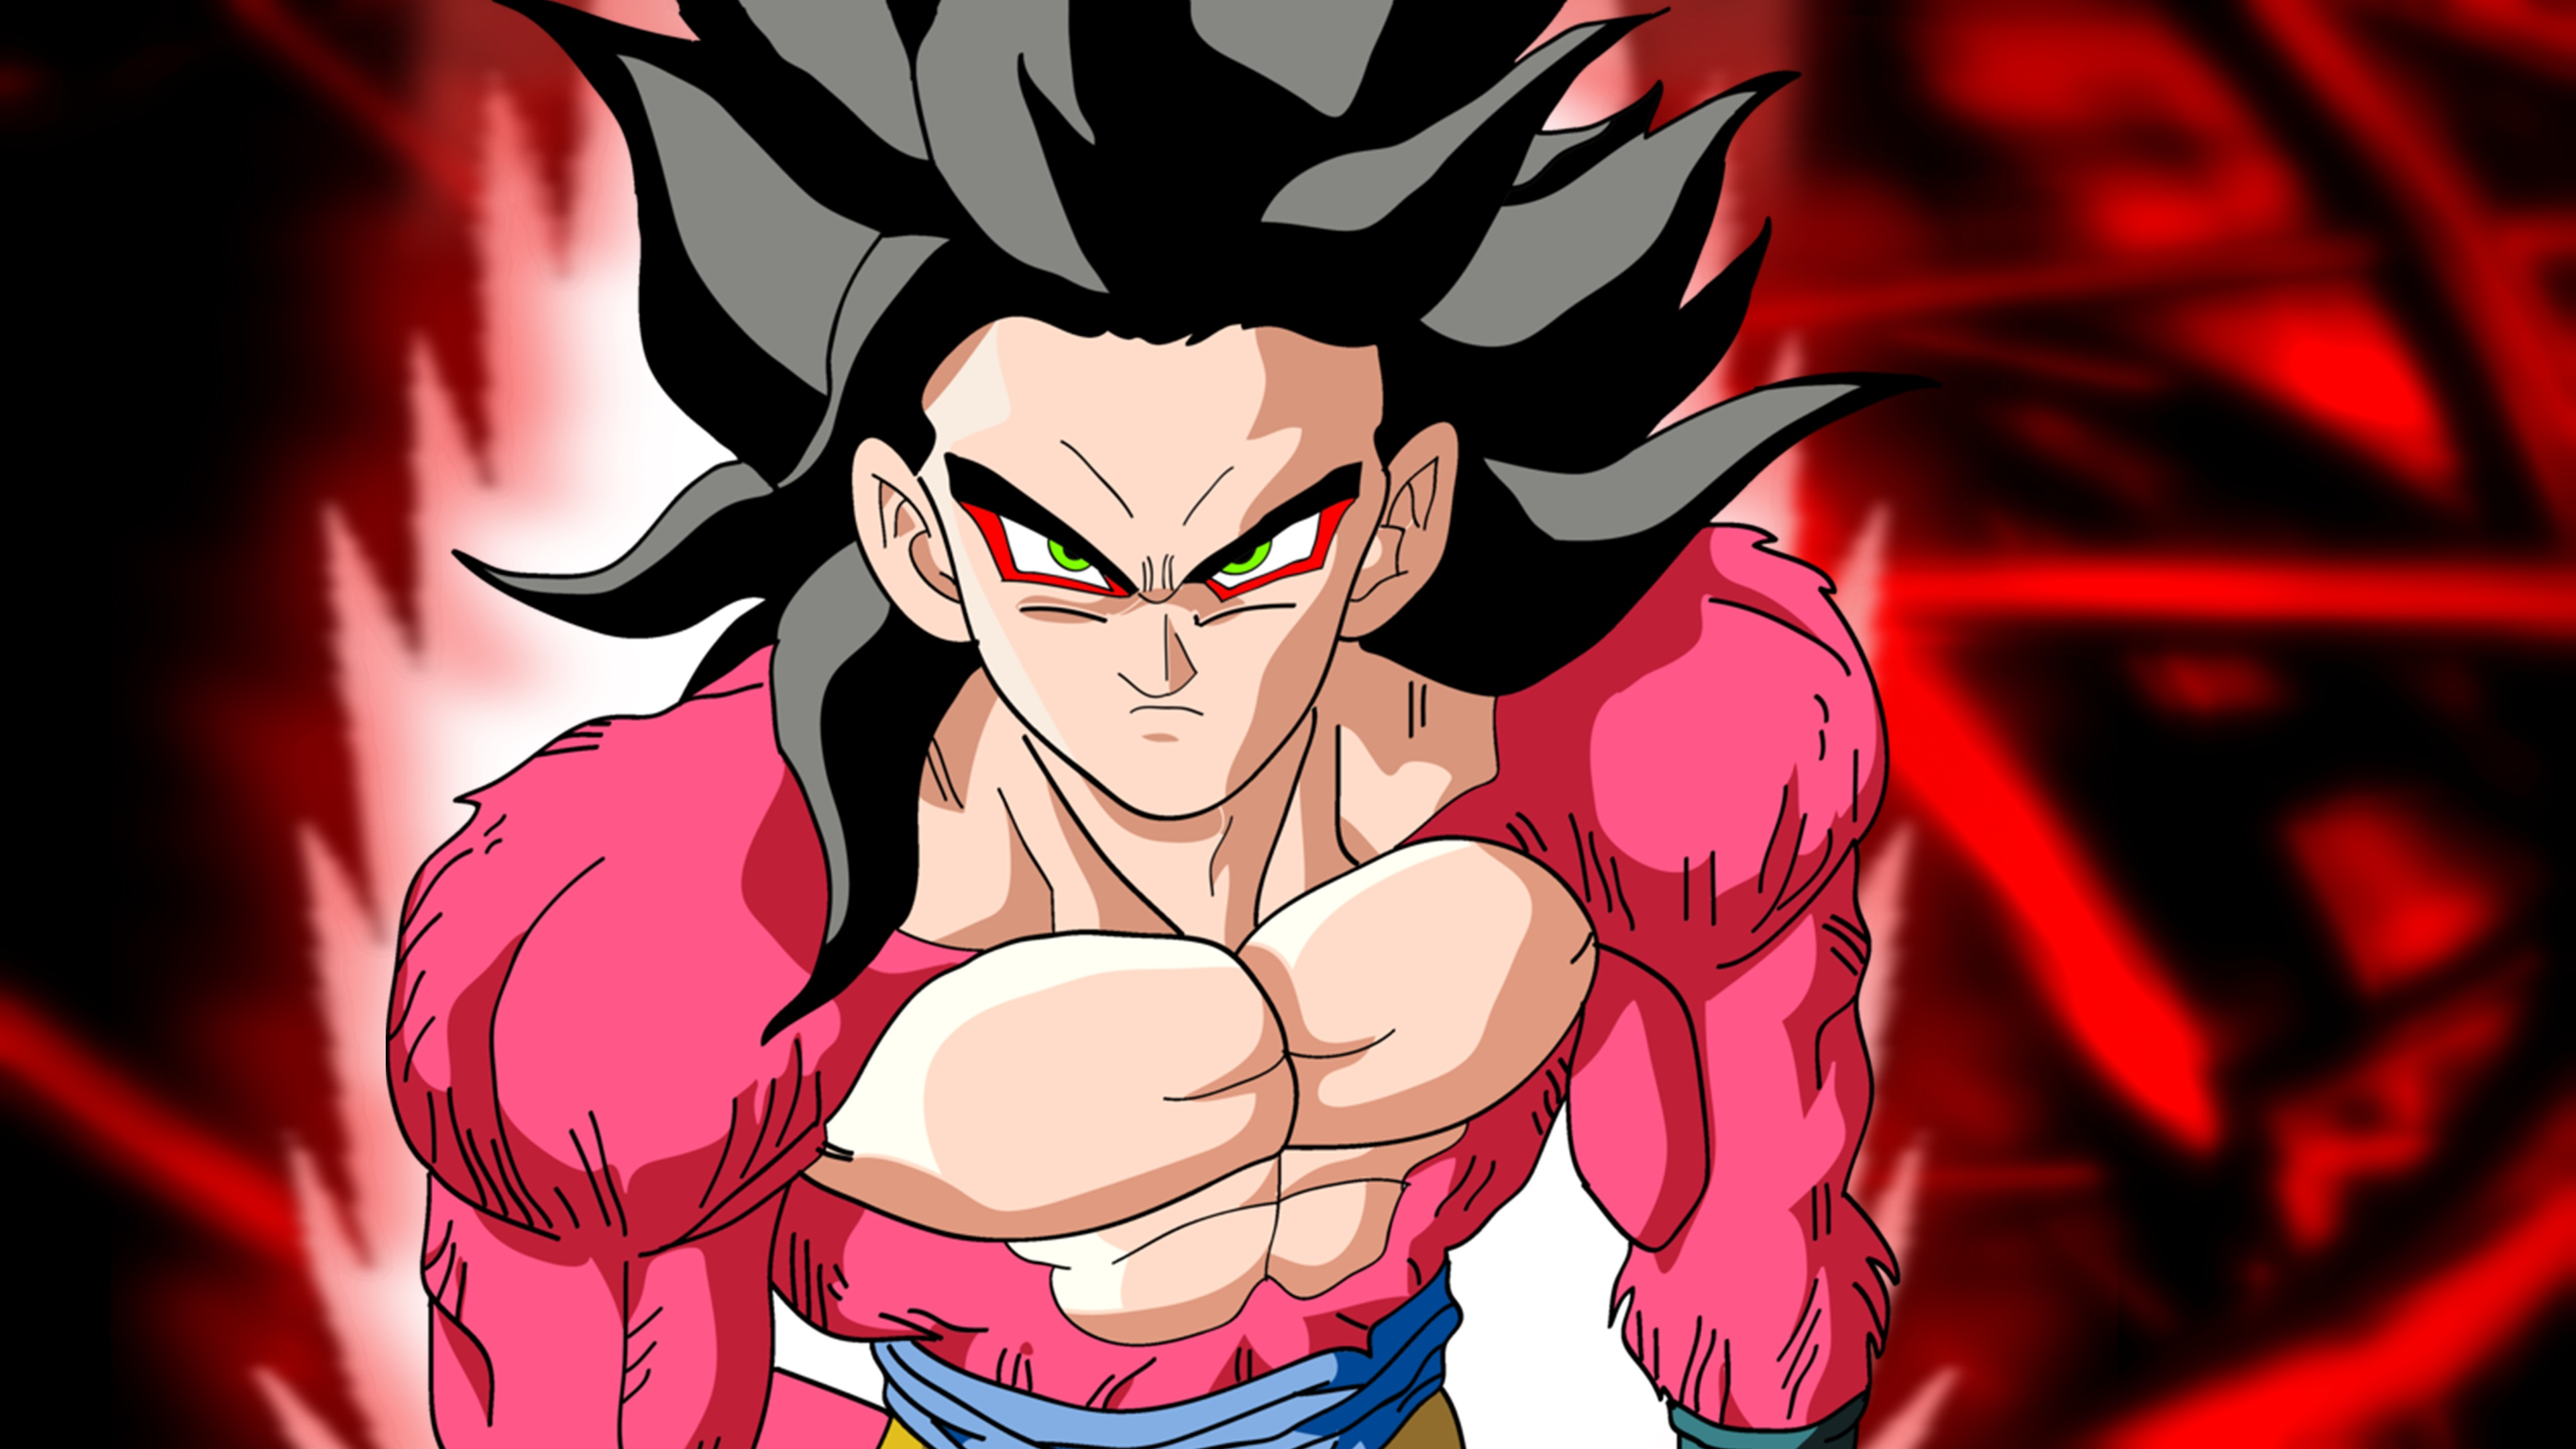 Dragon ball z, Goku SSJ4, SSJ5, Super Saiyan